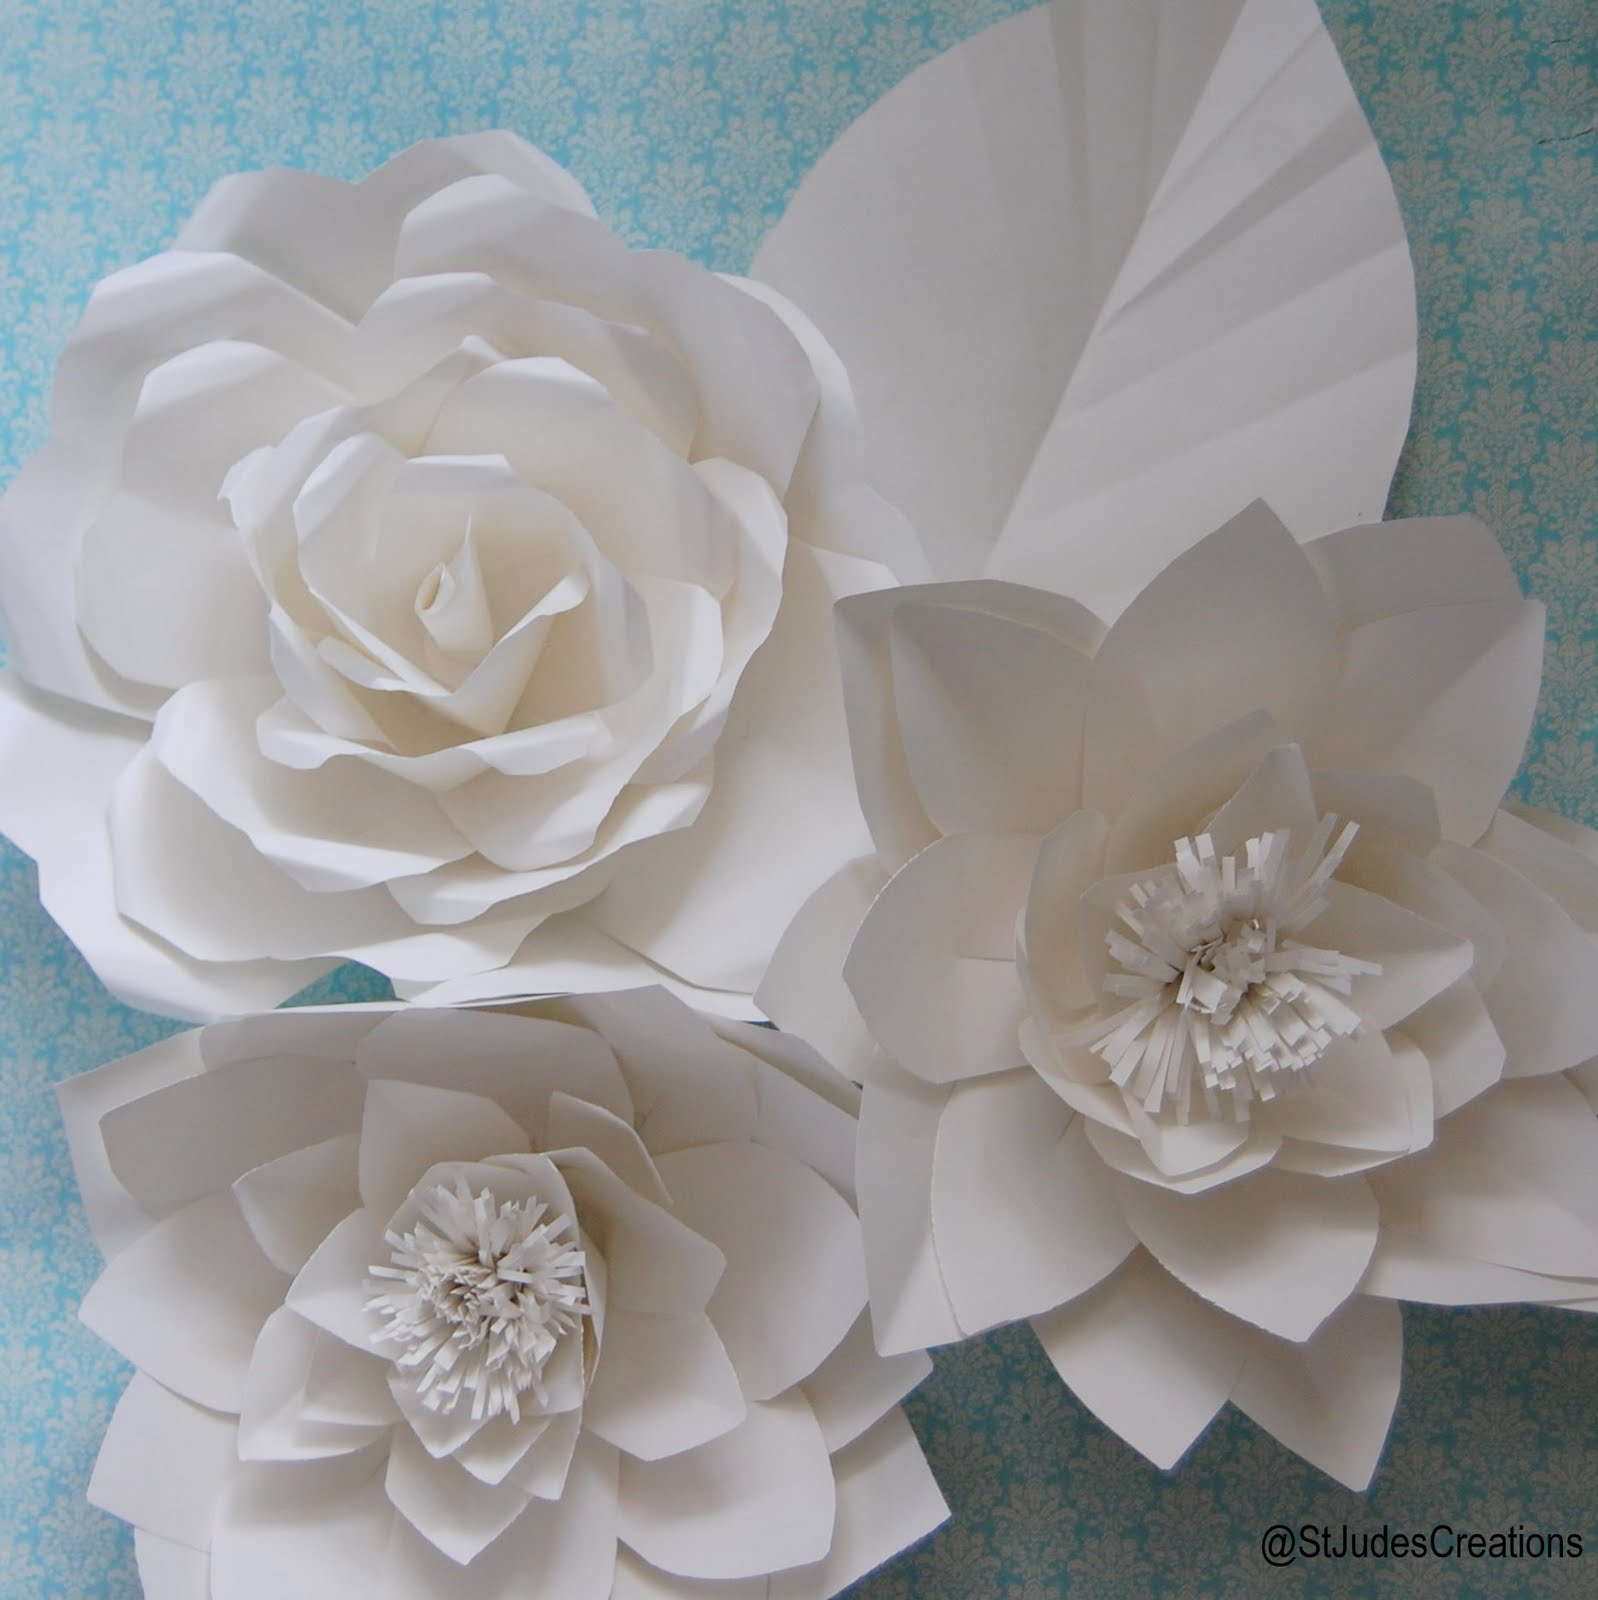 How To Make Handmade Flowers From Paper Window Display Paper Flower Handmade Paper Flowers By